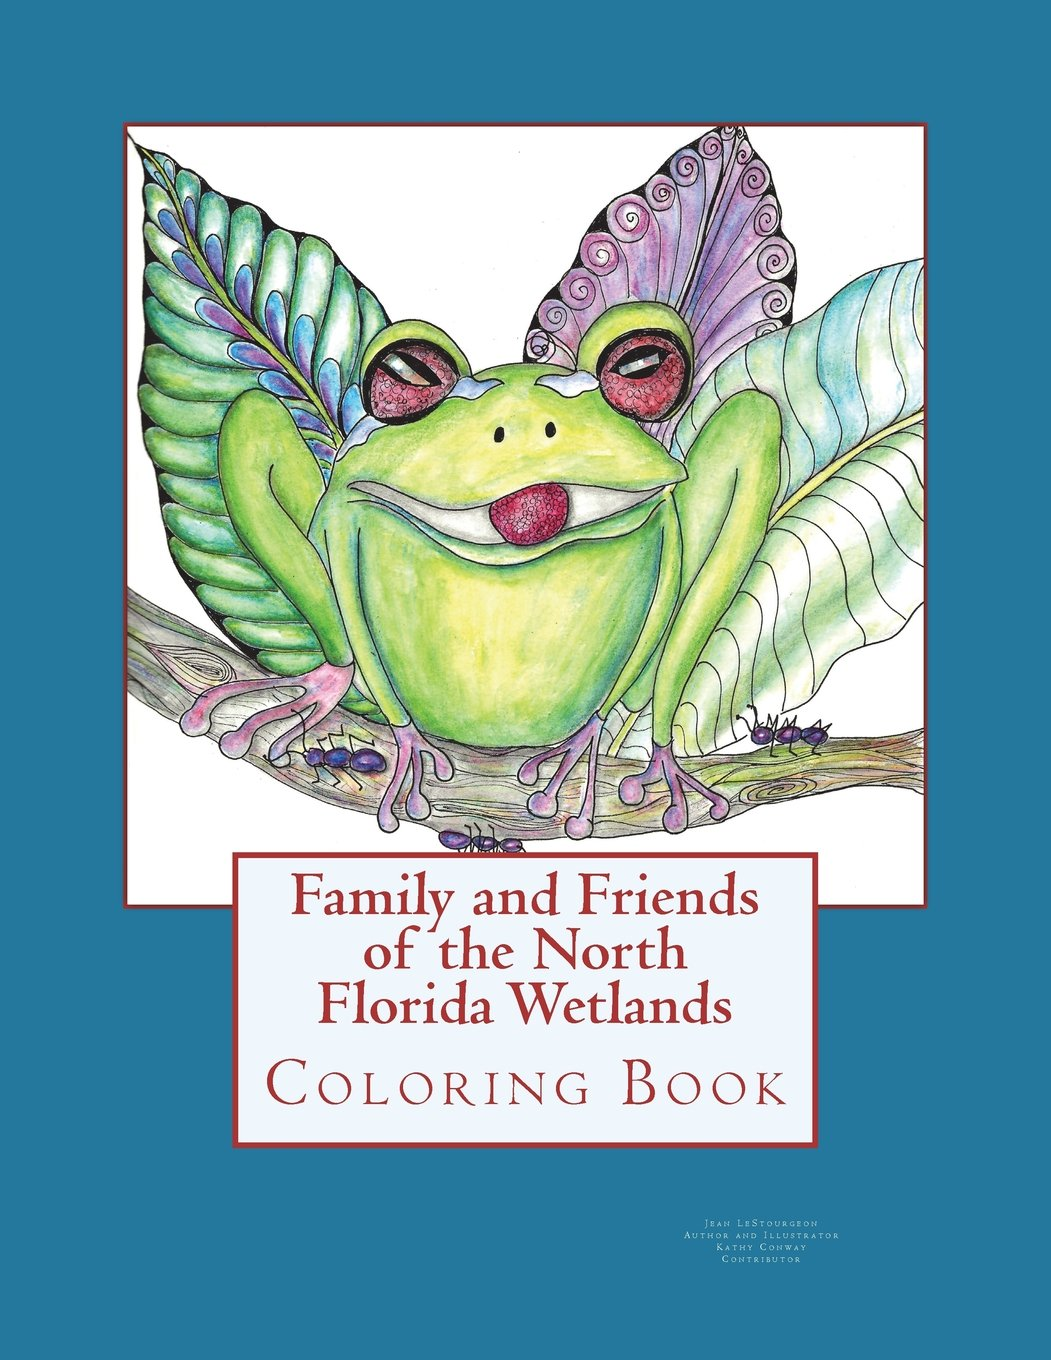 Family and friends of the north florida wetlands wildlife coloring book paperback june 19 2018